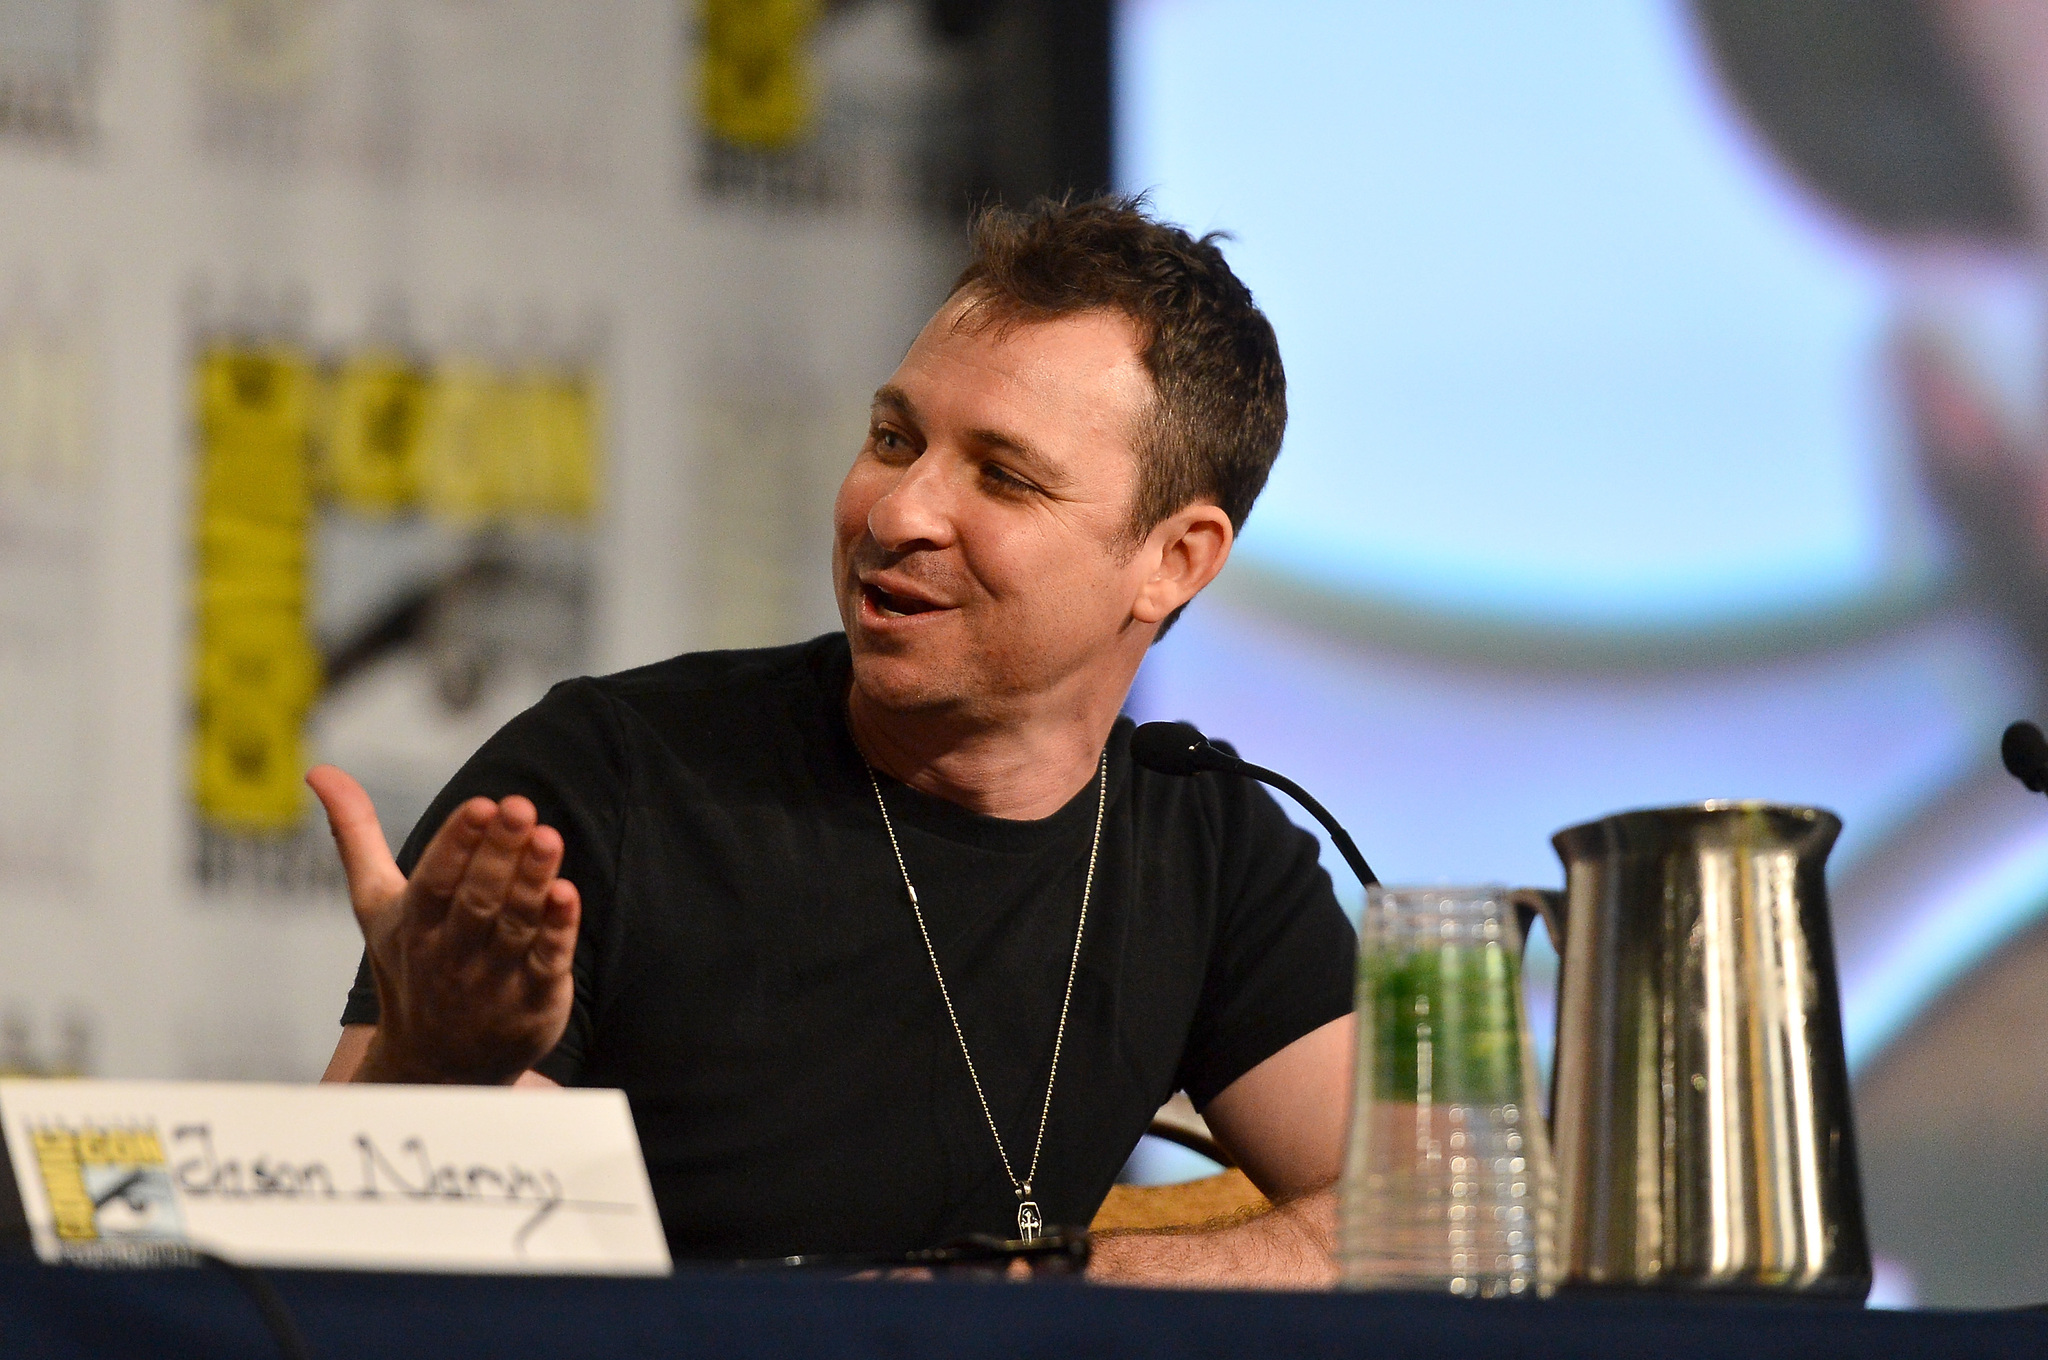 jason narvy and paul schrierjason narvy facebook, jason narvy twitter, jason narvy, jason narvy and paul schrier, jason narvy imdb, jason narvy net worth, jason narvy y paul schrier, jason narvy instagram, jason narvy power rangers samurai, jason narvy concordia, jason narvy 2015, jason narvy orange is the new black, jason narvy professor, jason narvy wife, jason narvy masked rider, jason narvy gay, jason narvy 2014, jason narvy interview, jason narvy piano, jason narvy chicago